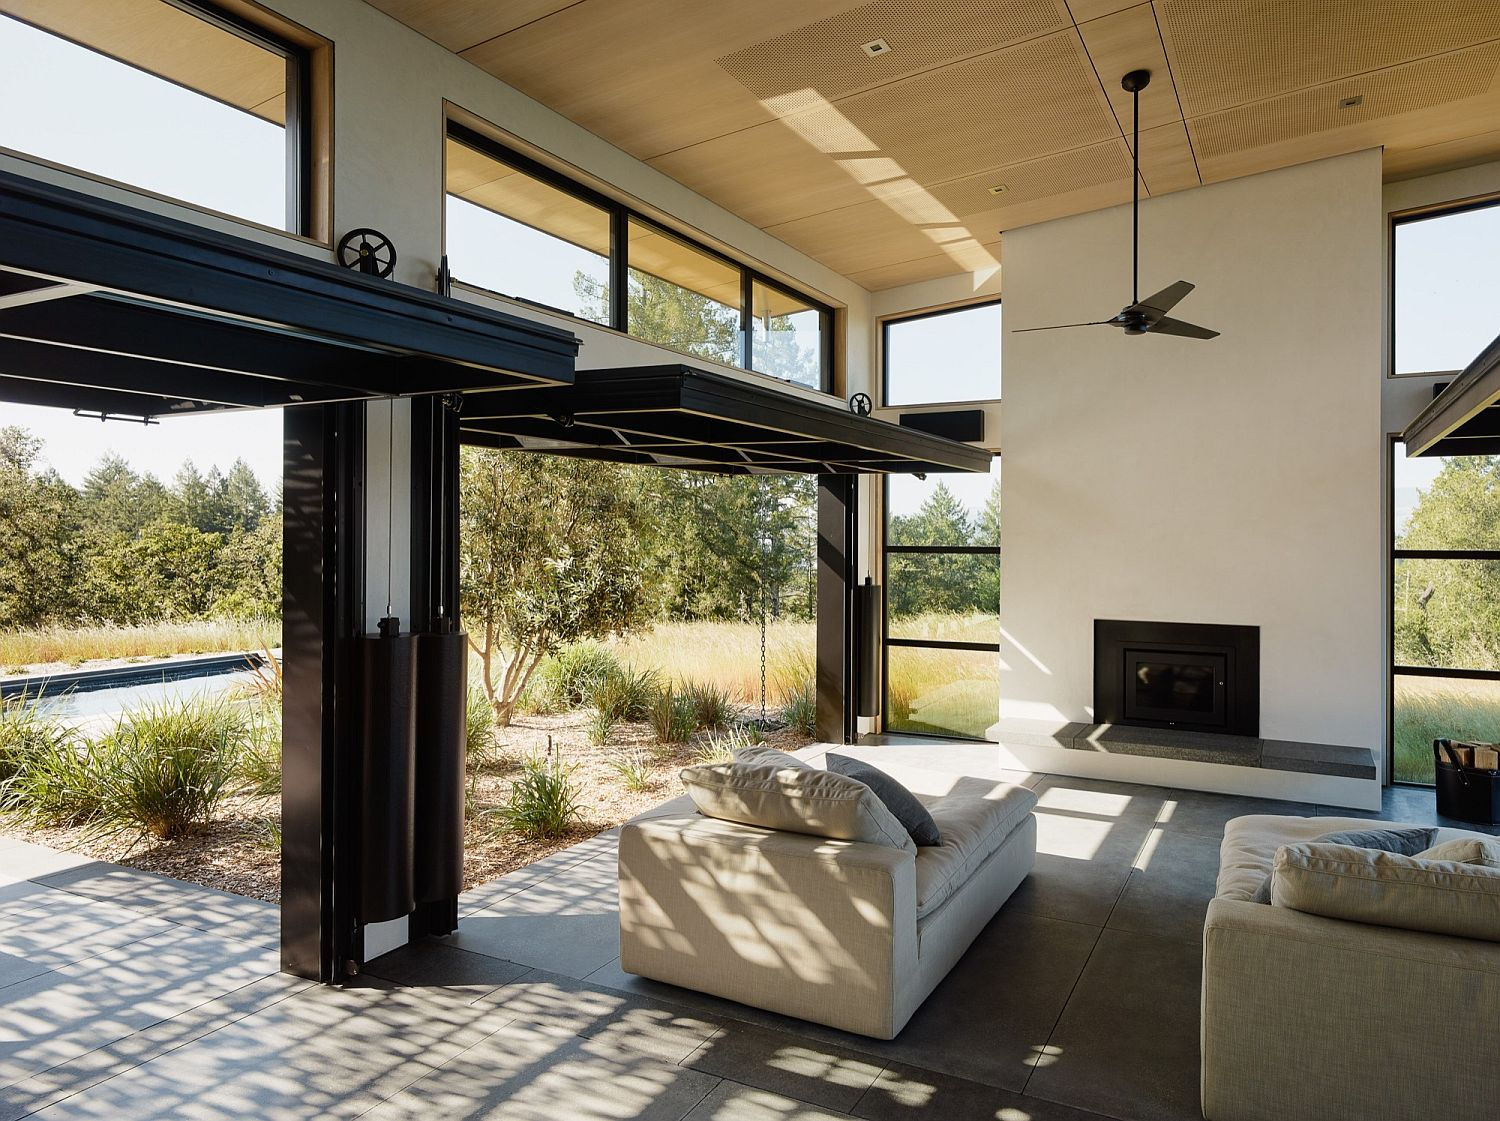 Operable doors and large glass windows connect the interior with the patio outdoor